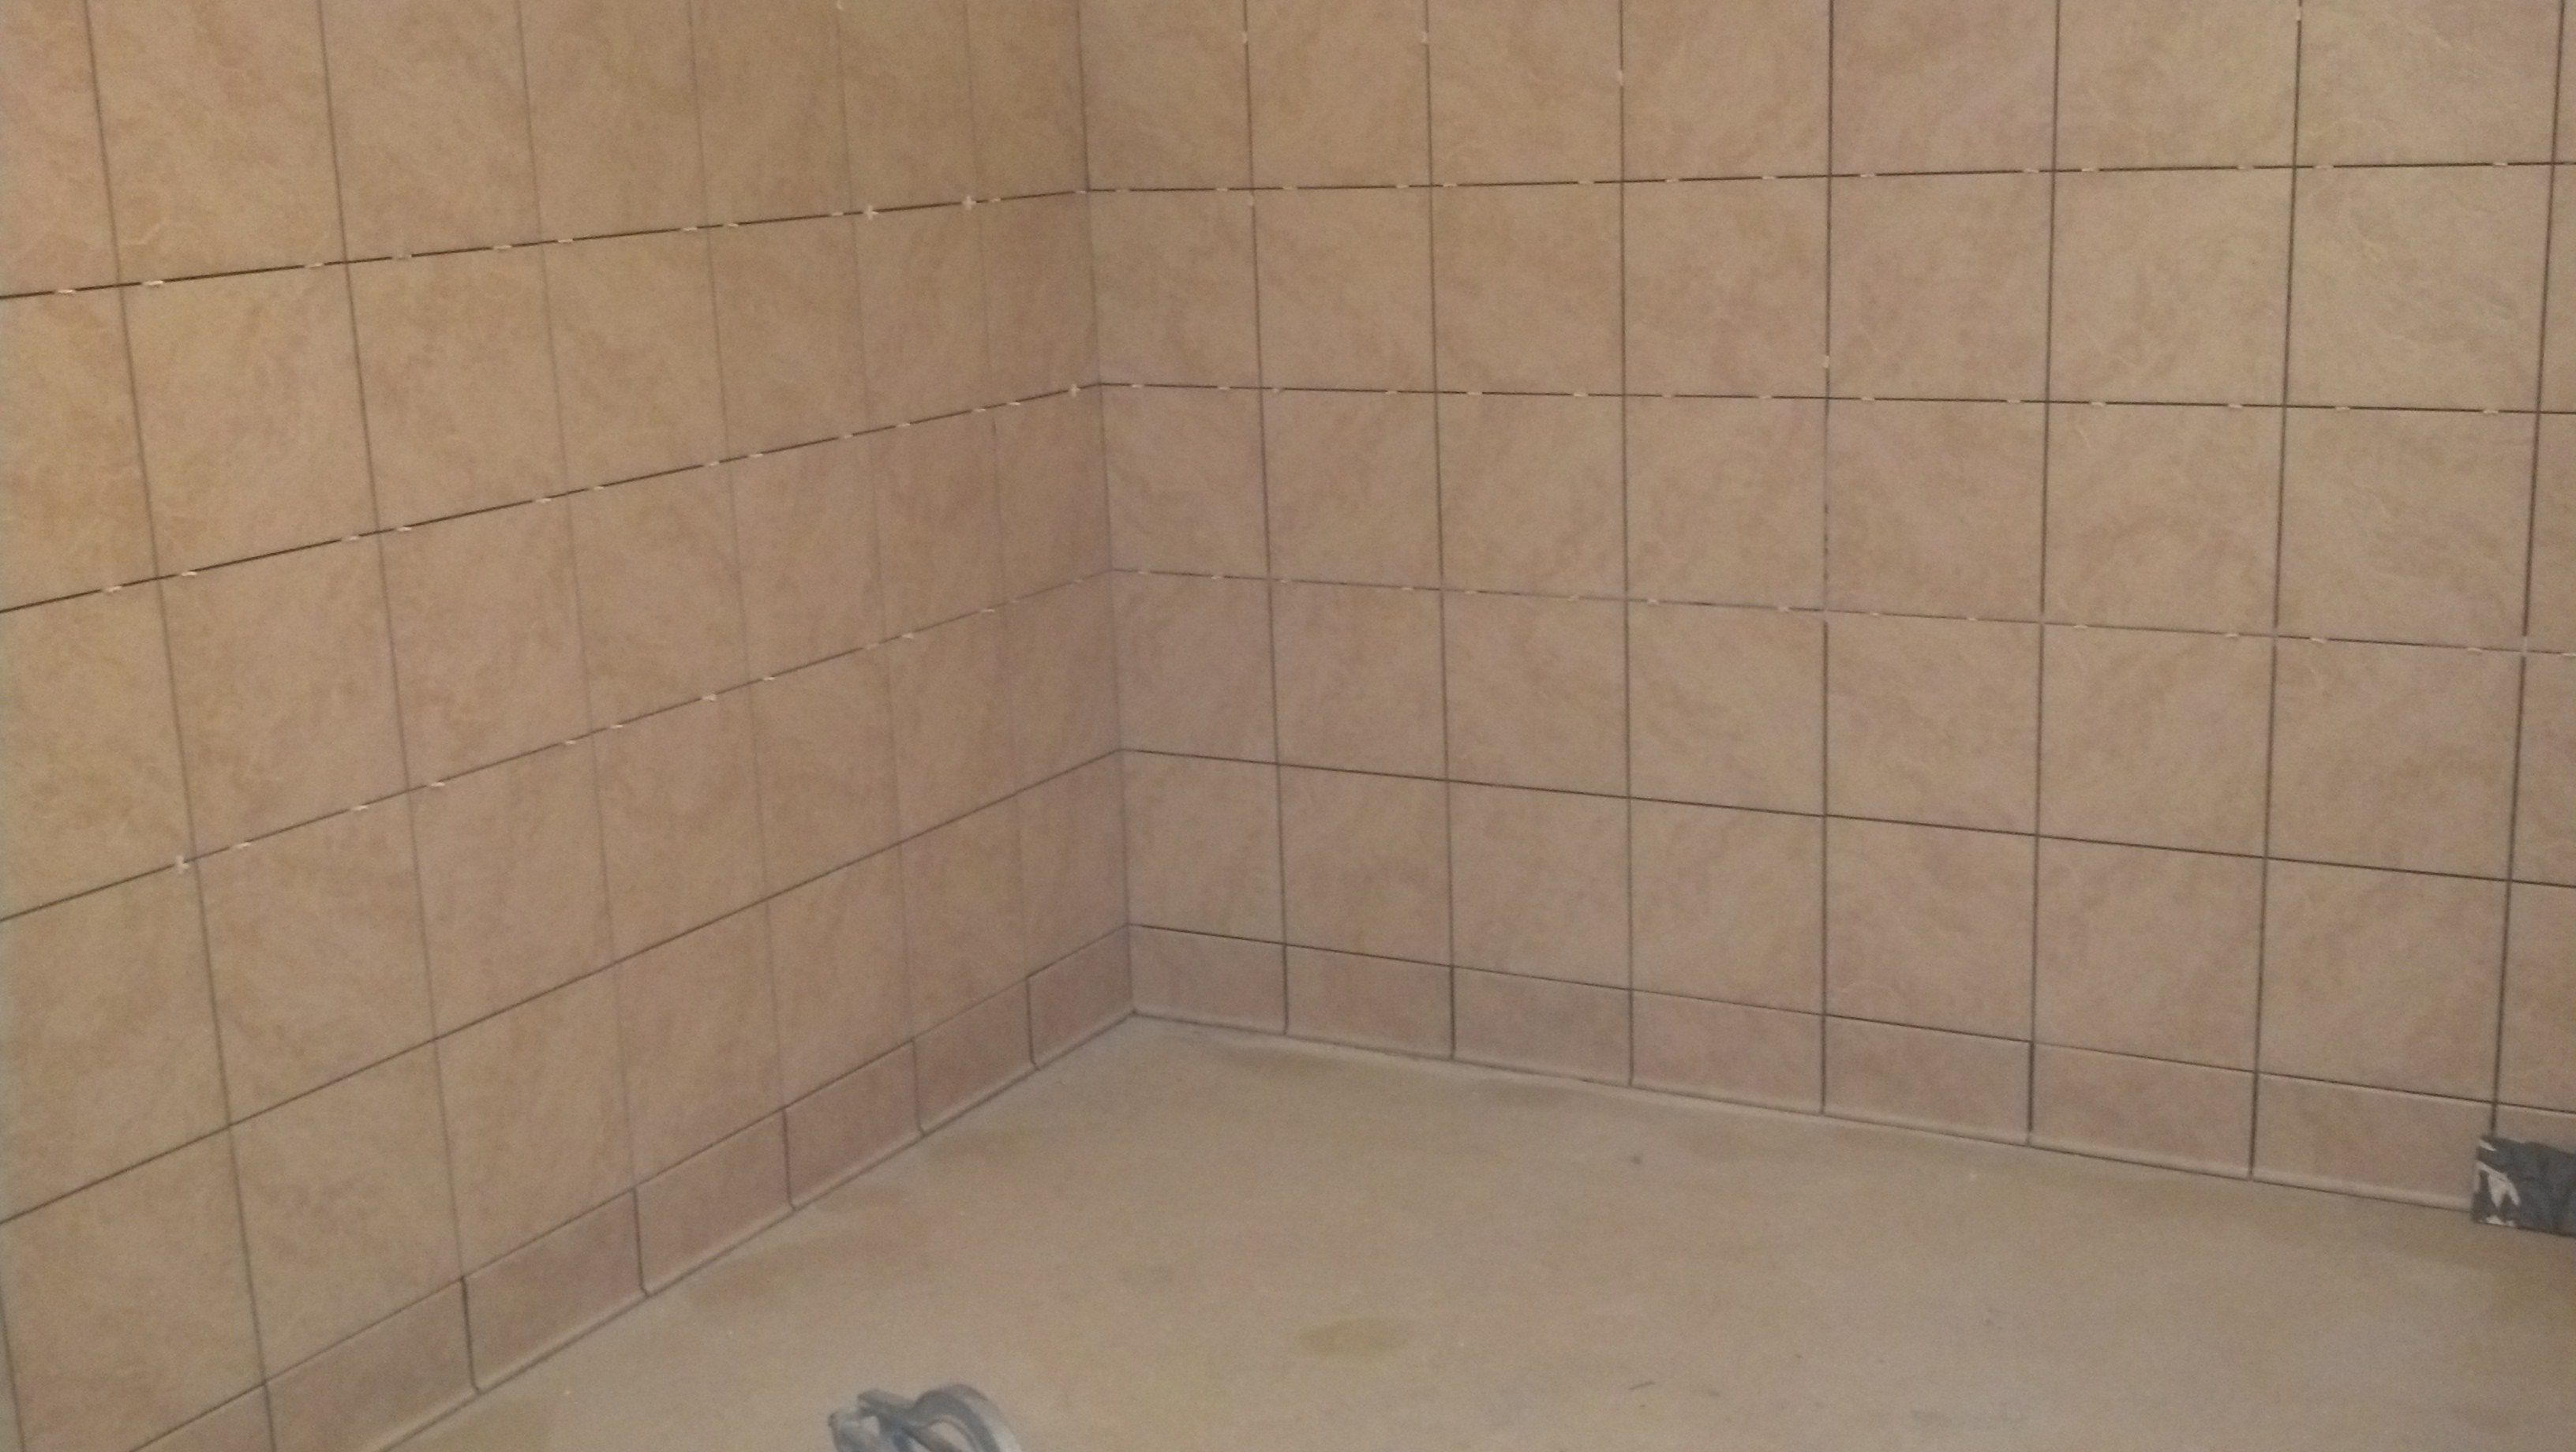 4-3-14 Tile Installation in Women's Changing Room